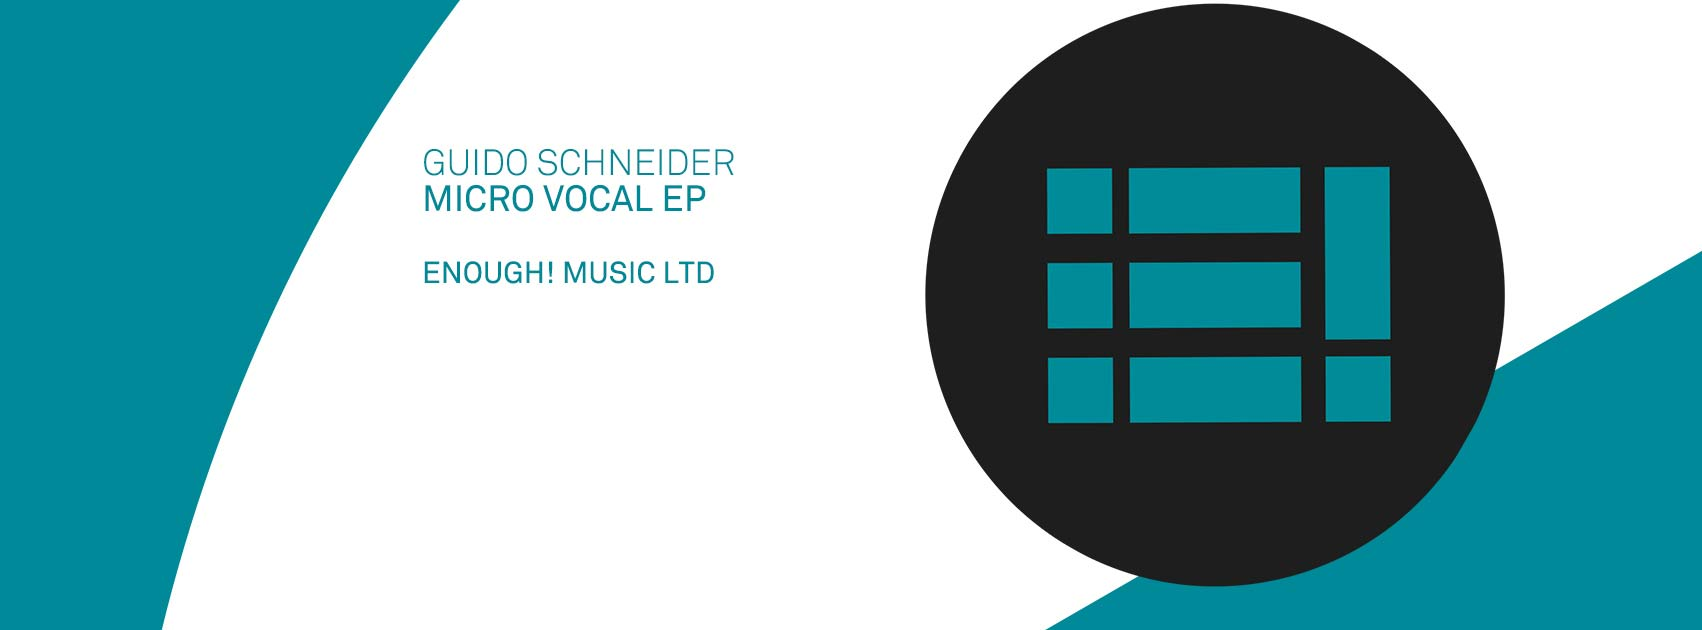 Micro Vocal EP – Guido Schneider